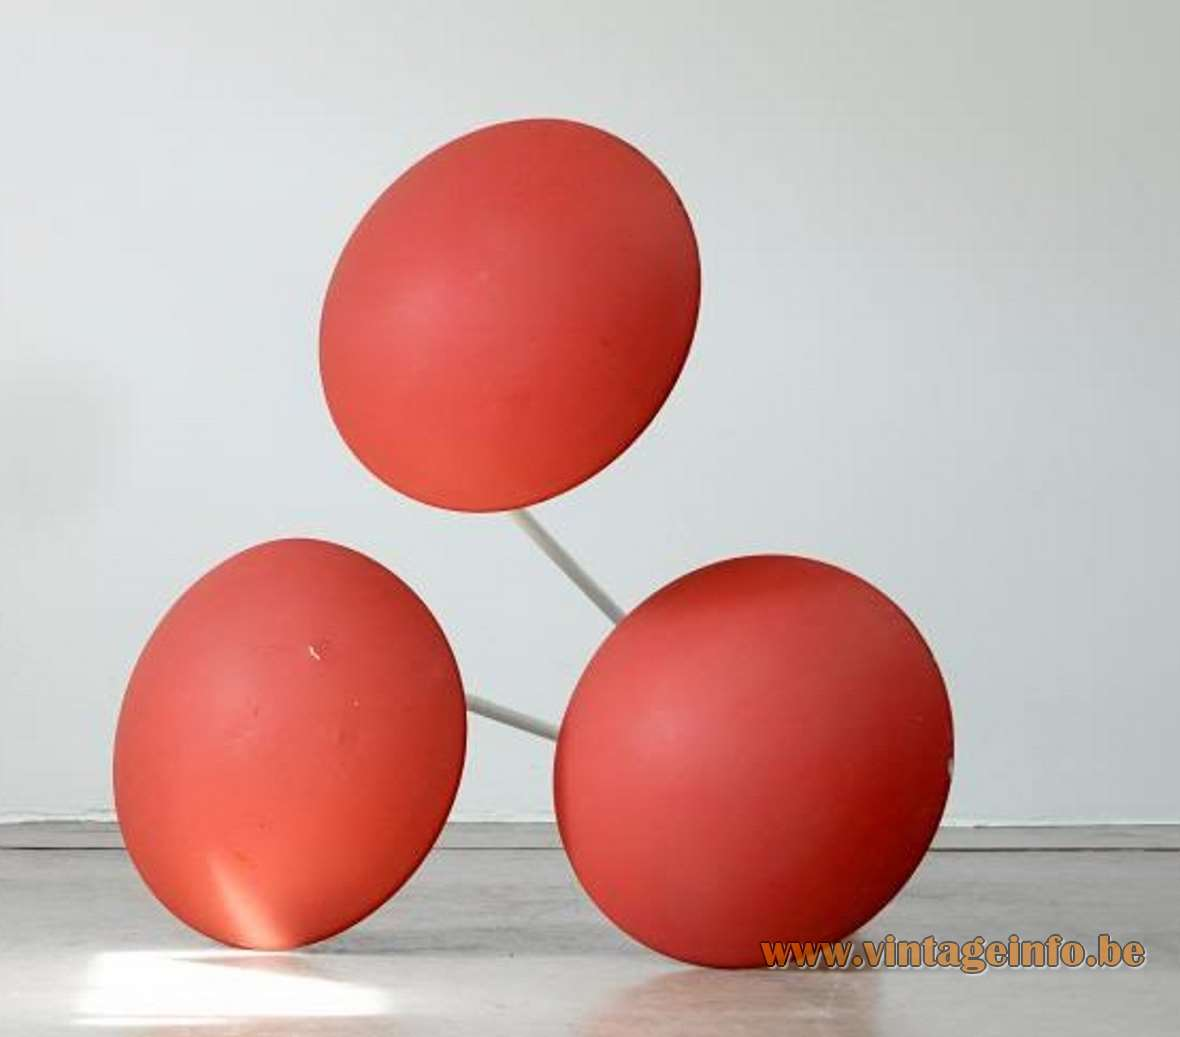 BEGA Garden Lamps Expo 58 Brussels red white metal 1950s 1960s Germany mushroom outdoor iron